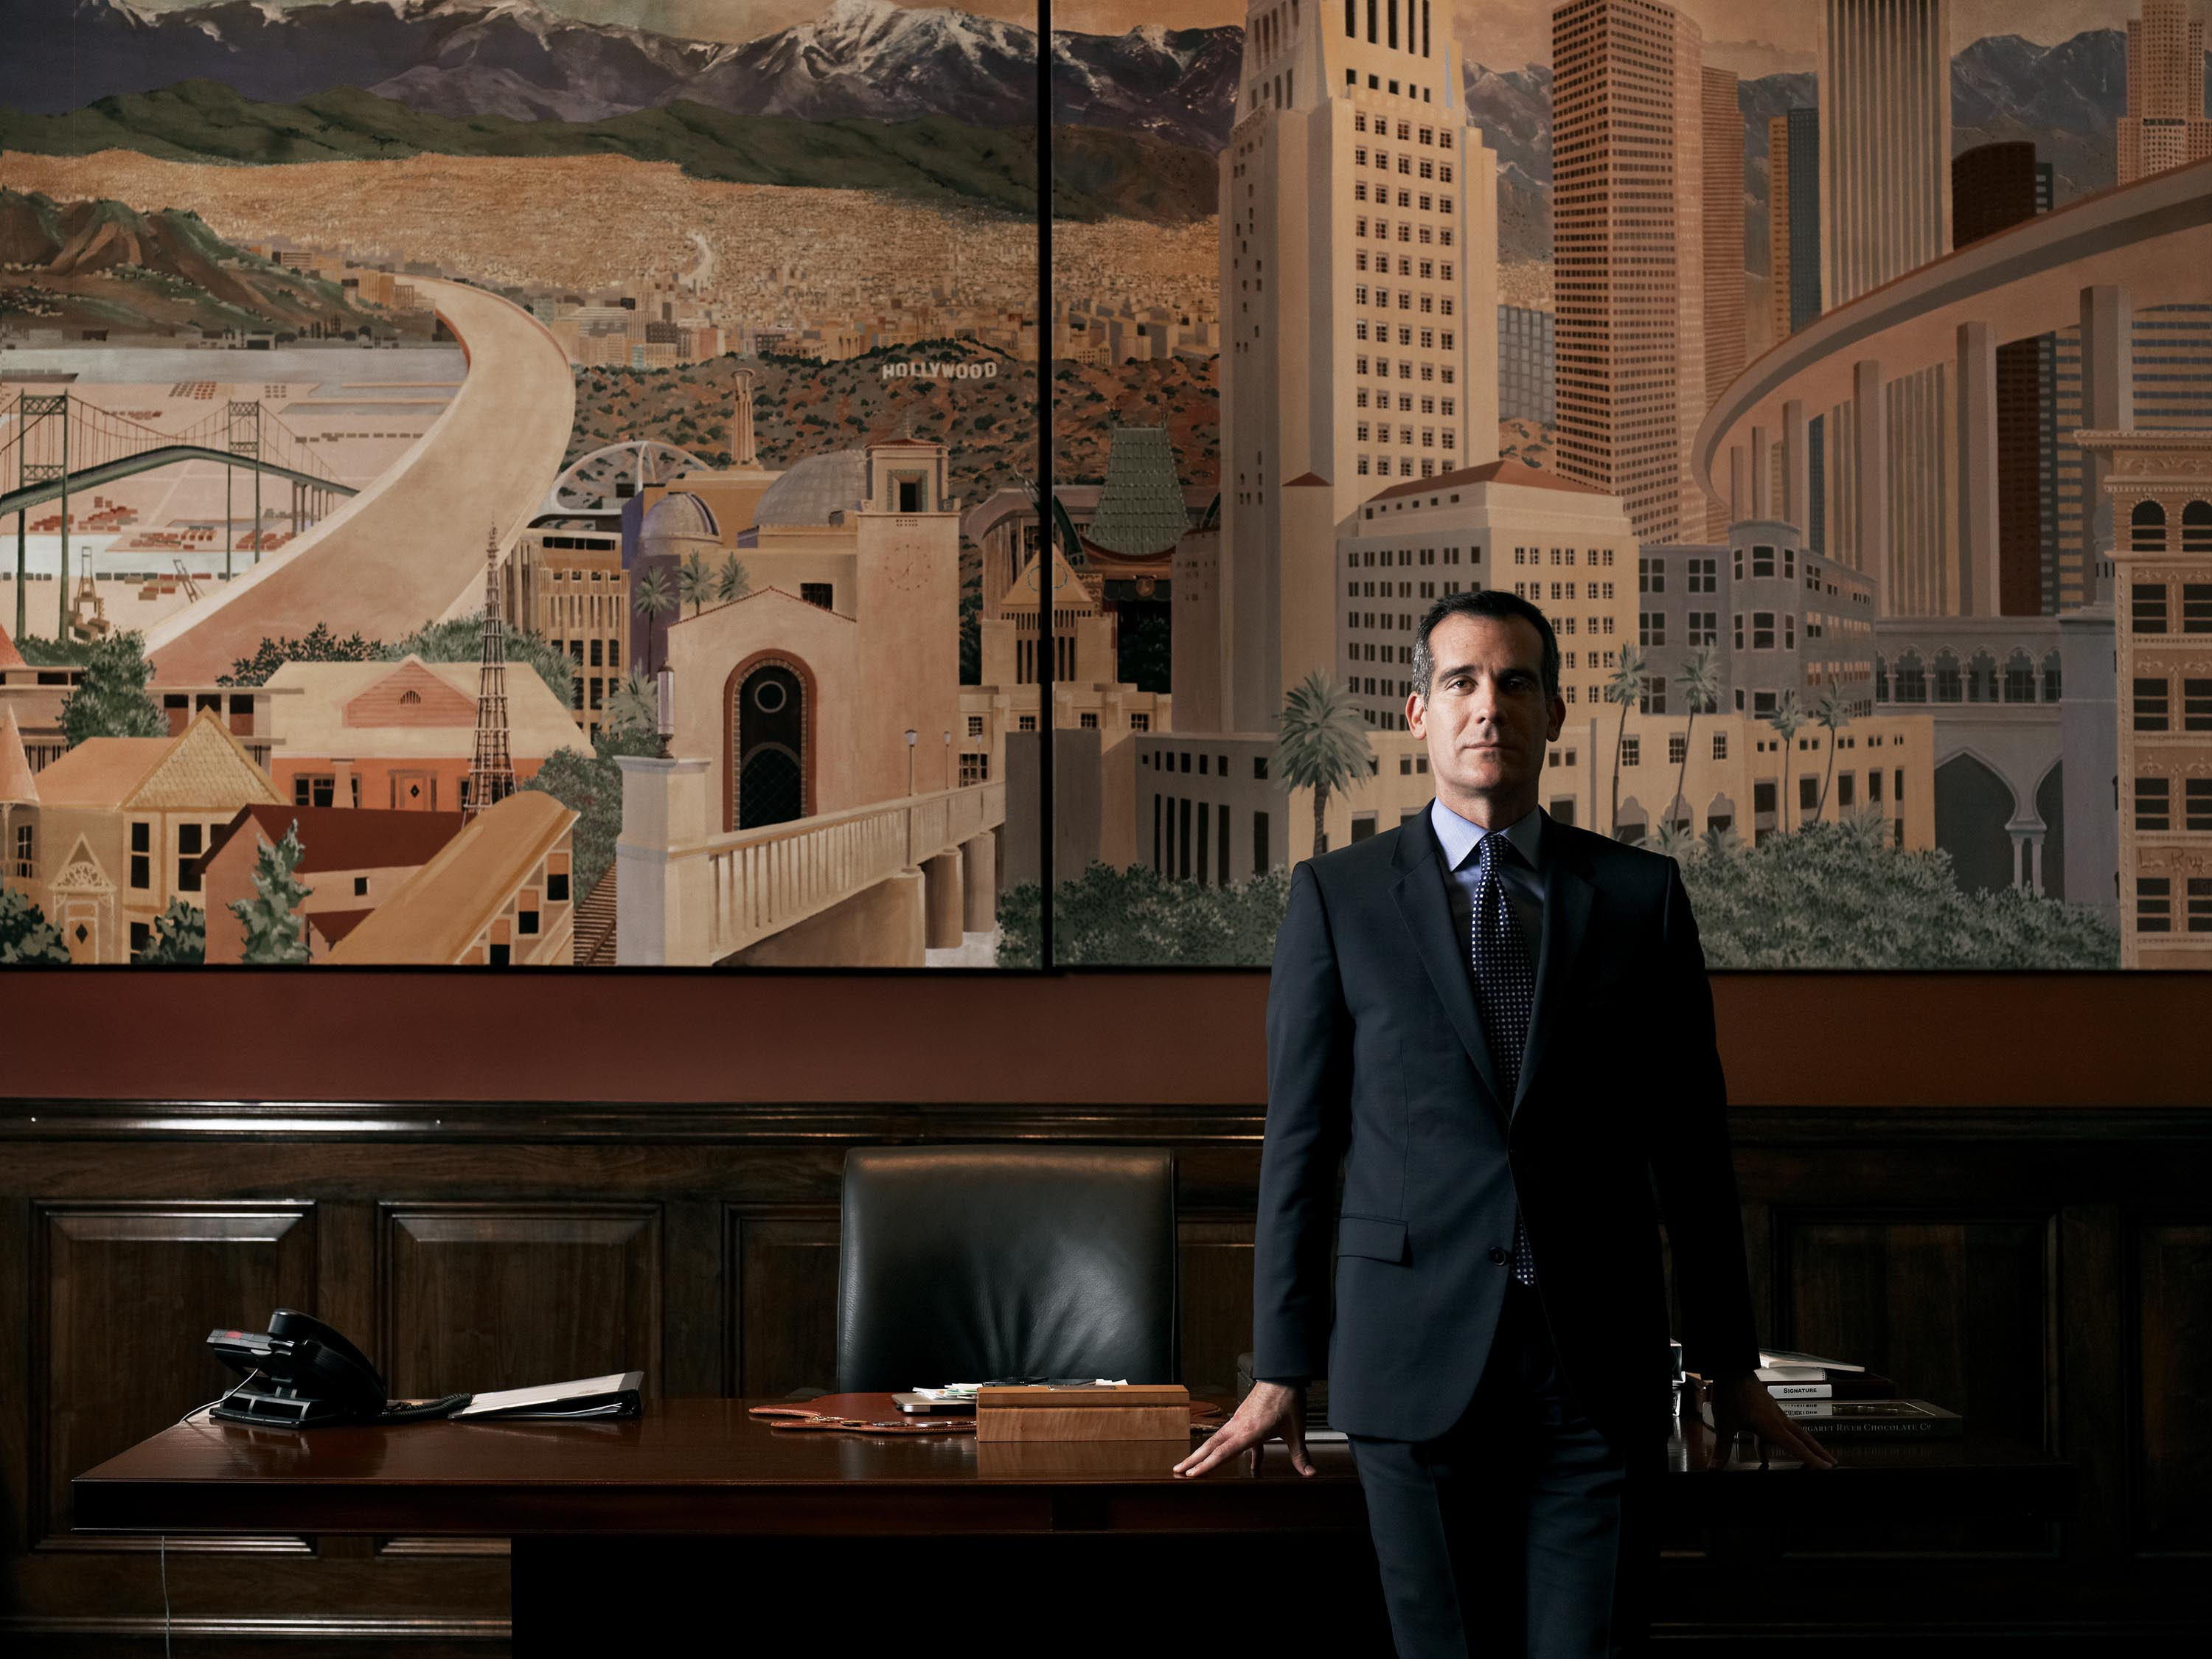 The new boss Garcetti in his city hall office